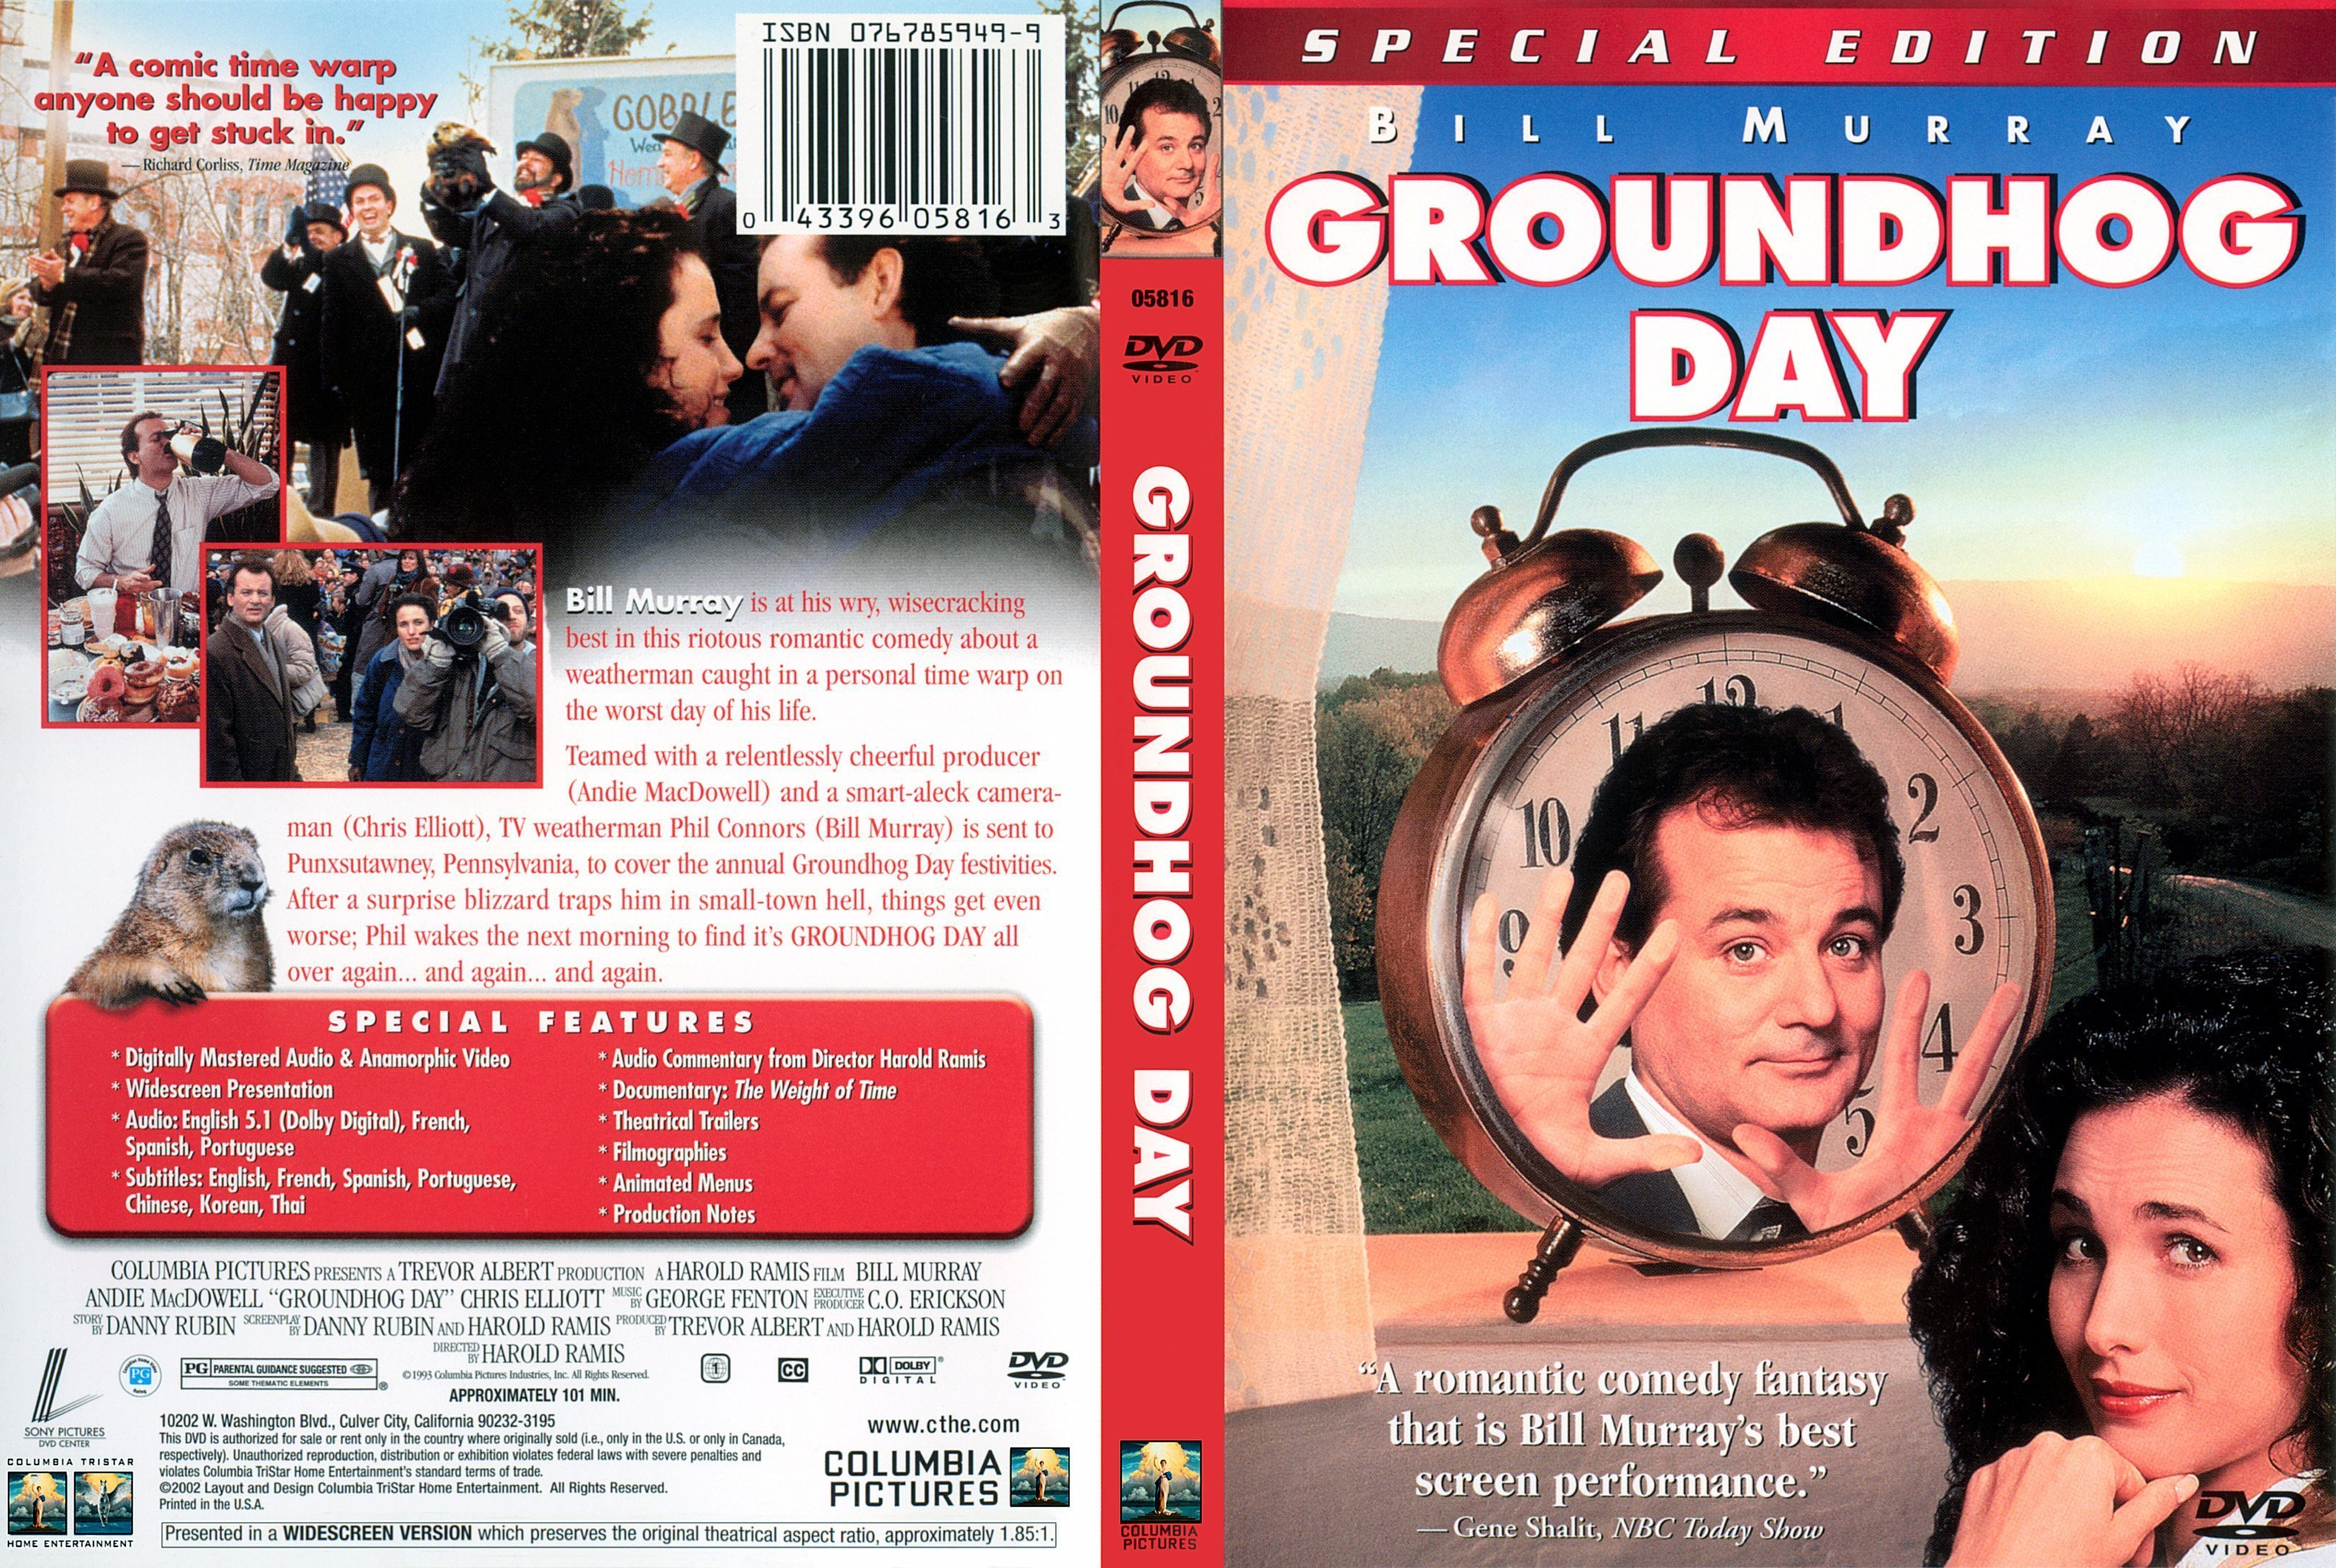 learnings from groundhog day movie